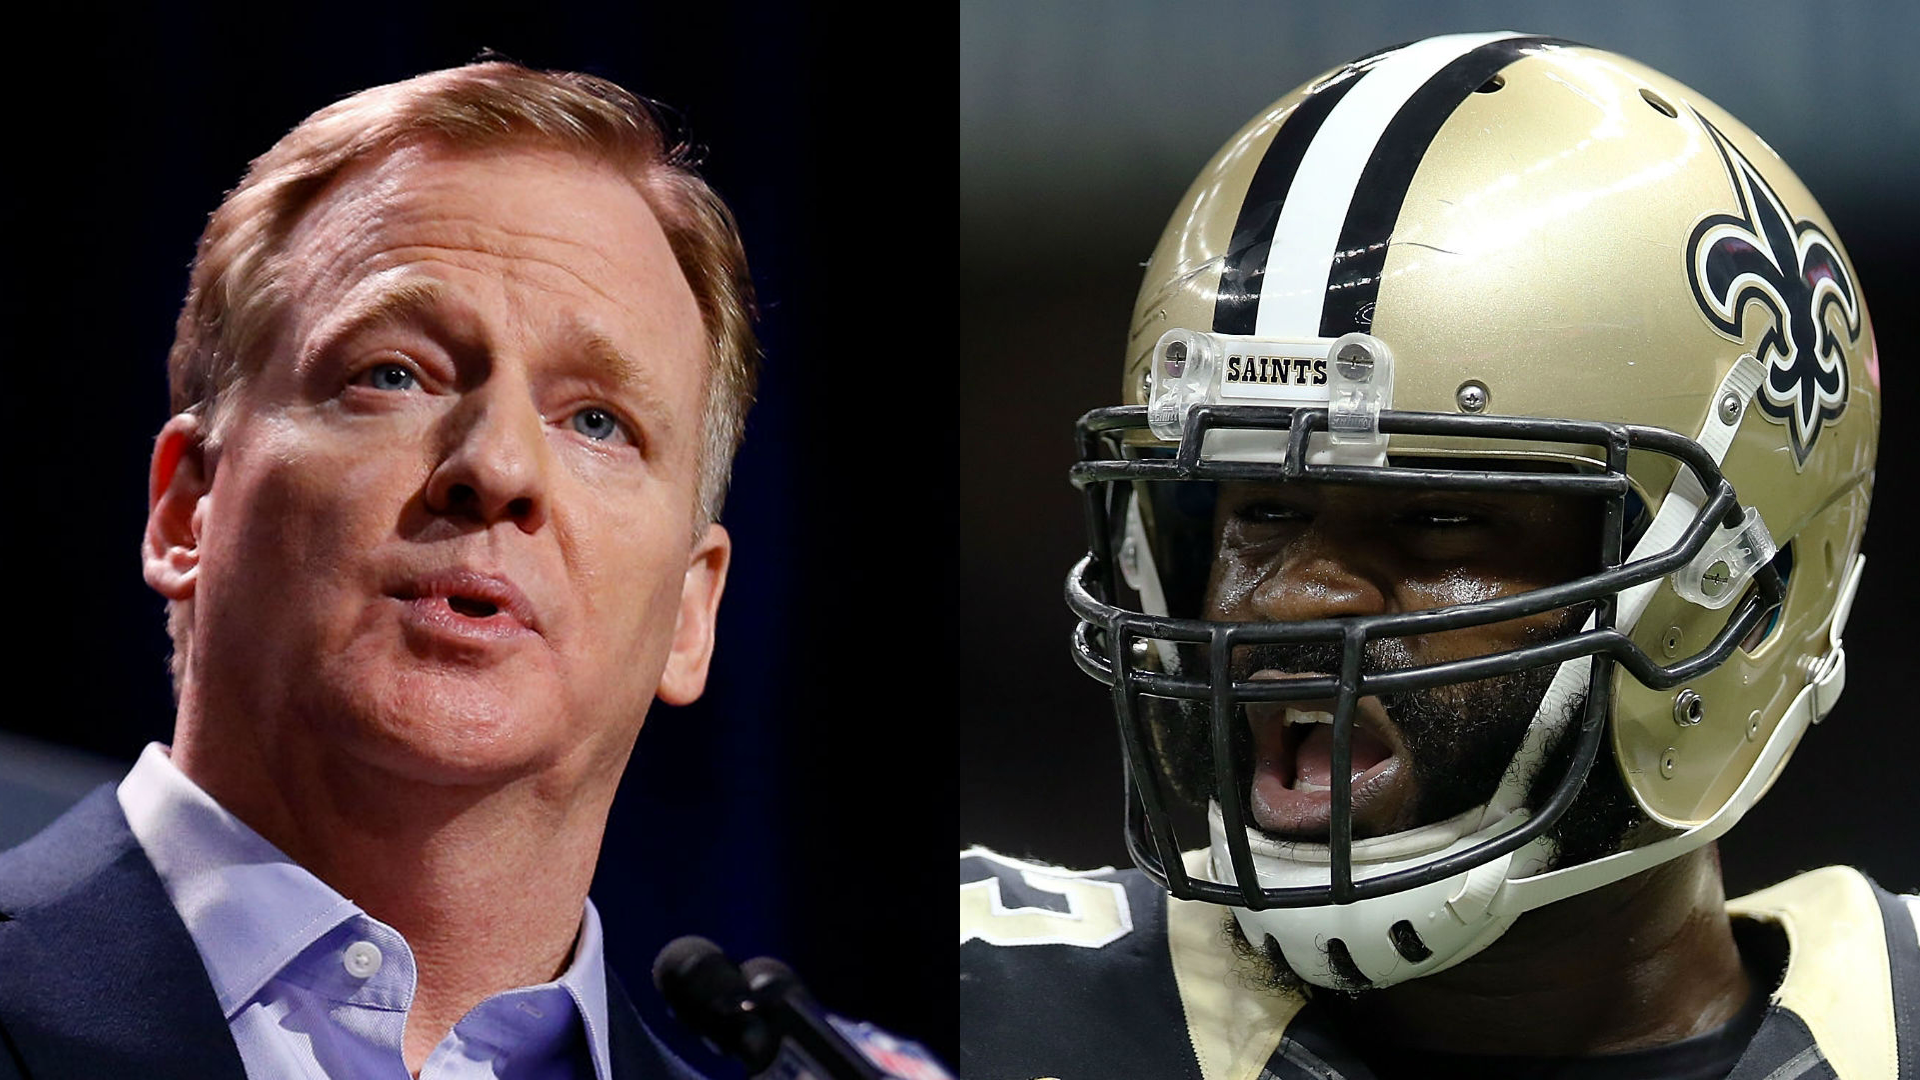 Junior Galette claims he's been 'blackballed' from NFL in open letter to Roger Goodell